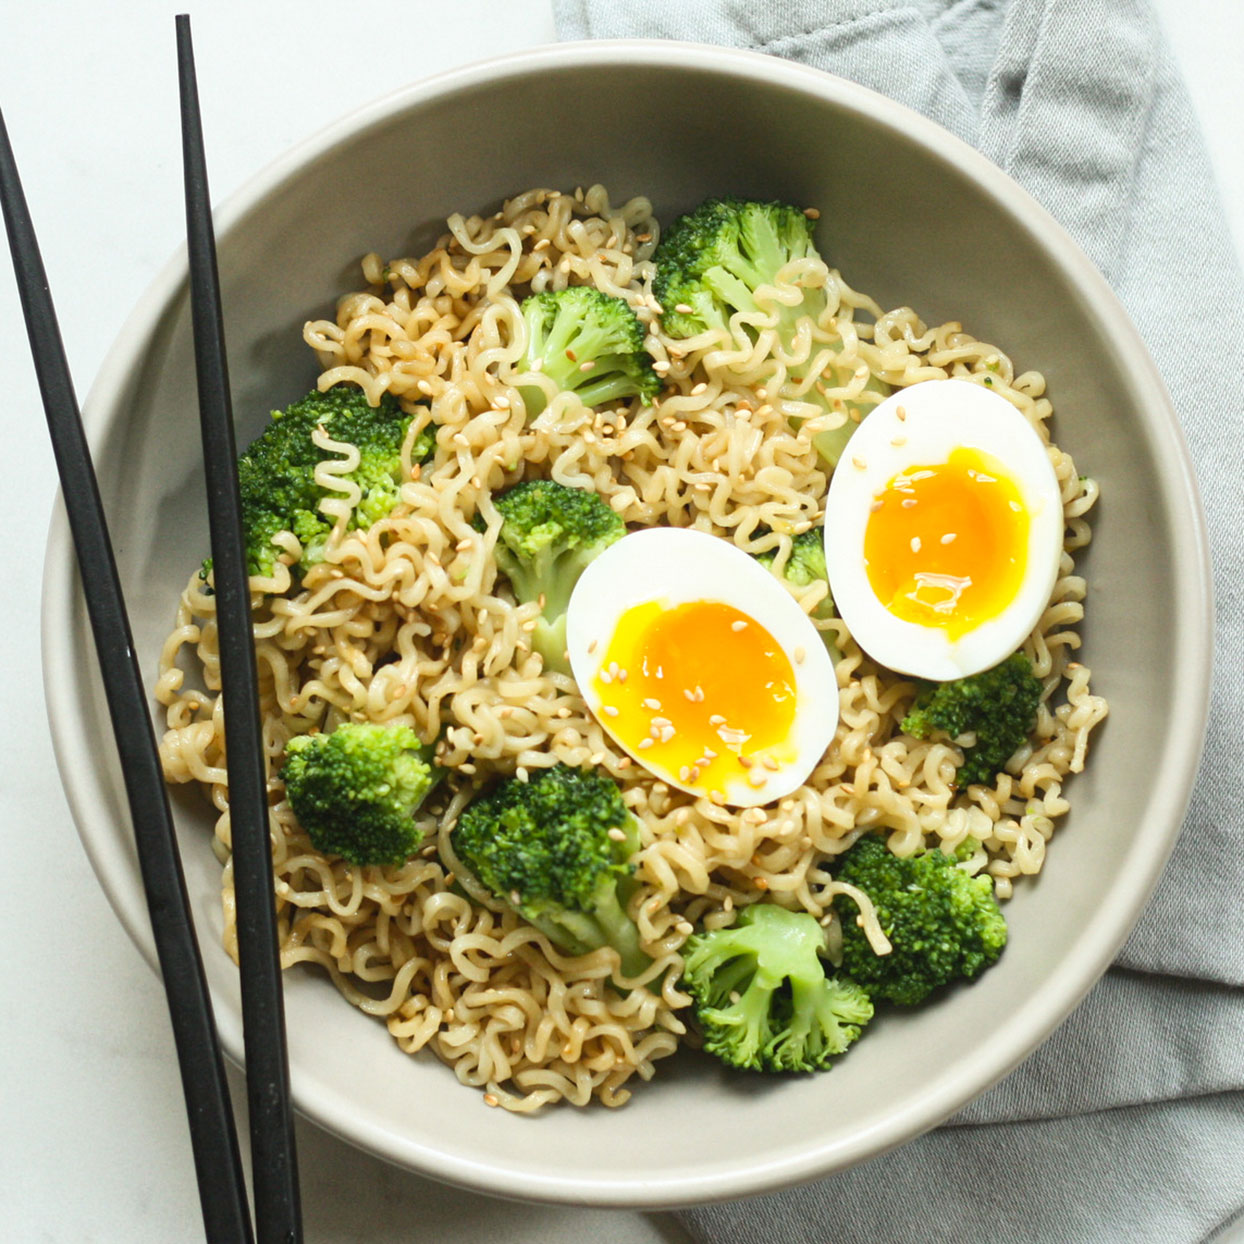 Jazz up basic ramen noodles with toasted sesame oil, quick-cooked broccoli and a jammy soft-boiled egg. To cut back on sodium, look for ramen varieties with less than 600 mg sodium per serving or use less of the seasoning packet. Source: EatingWell.com, July 2020